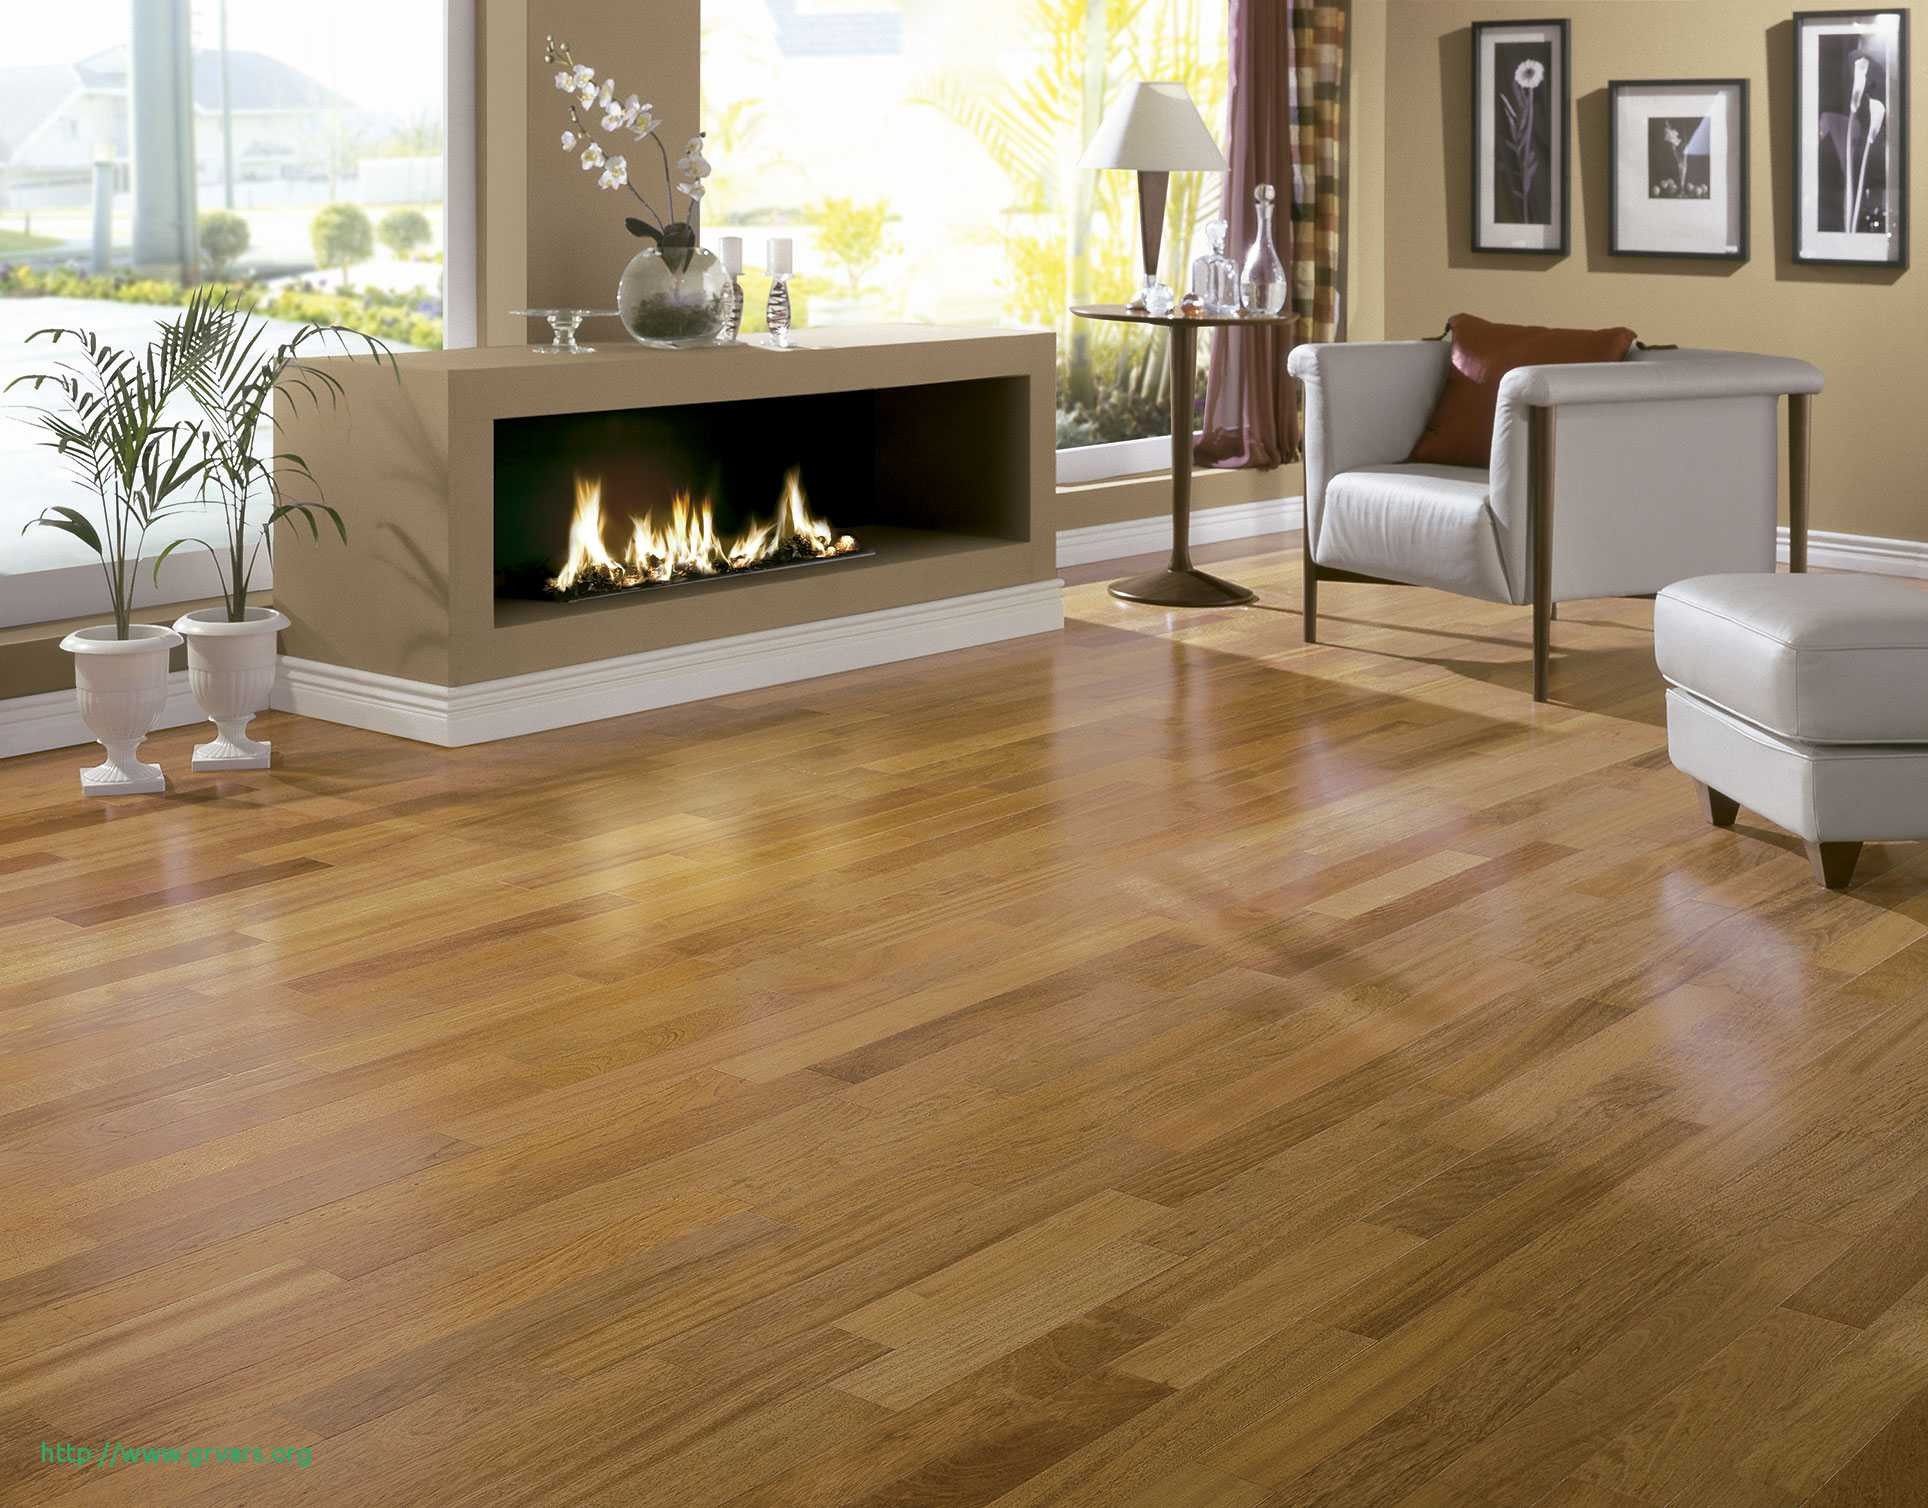 hardwood floor installation methods of best method for cleaning wood floors charmant engaging discount with best method for cleaning wood floors charmant engaging discount hardwood flooring 5 where to buy inspirational 0d